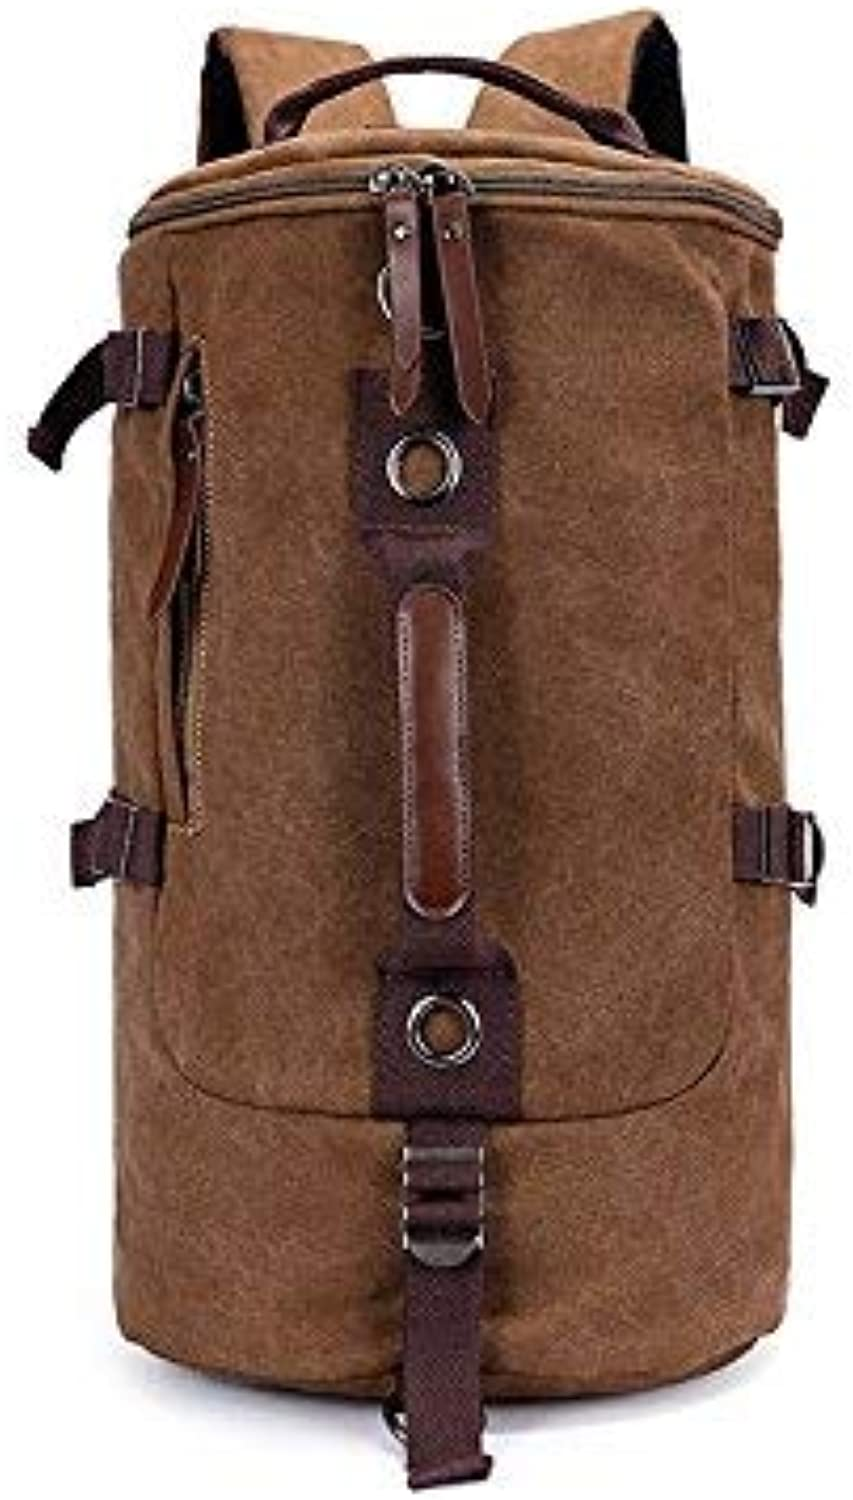 IANXI Home Outdoor and Indoor Canvas Backpack Shoulder Diagonal Casual Men's LargeCapacity MultiPurpose Travel Bag Mountaineering Bags(Coffee)